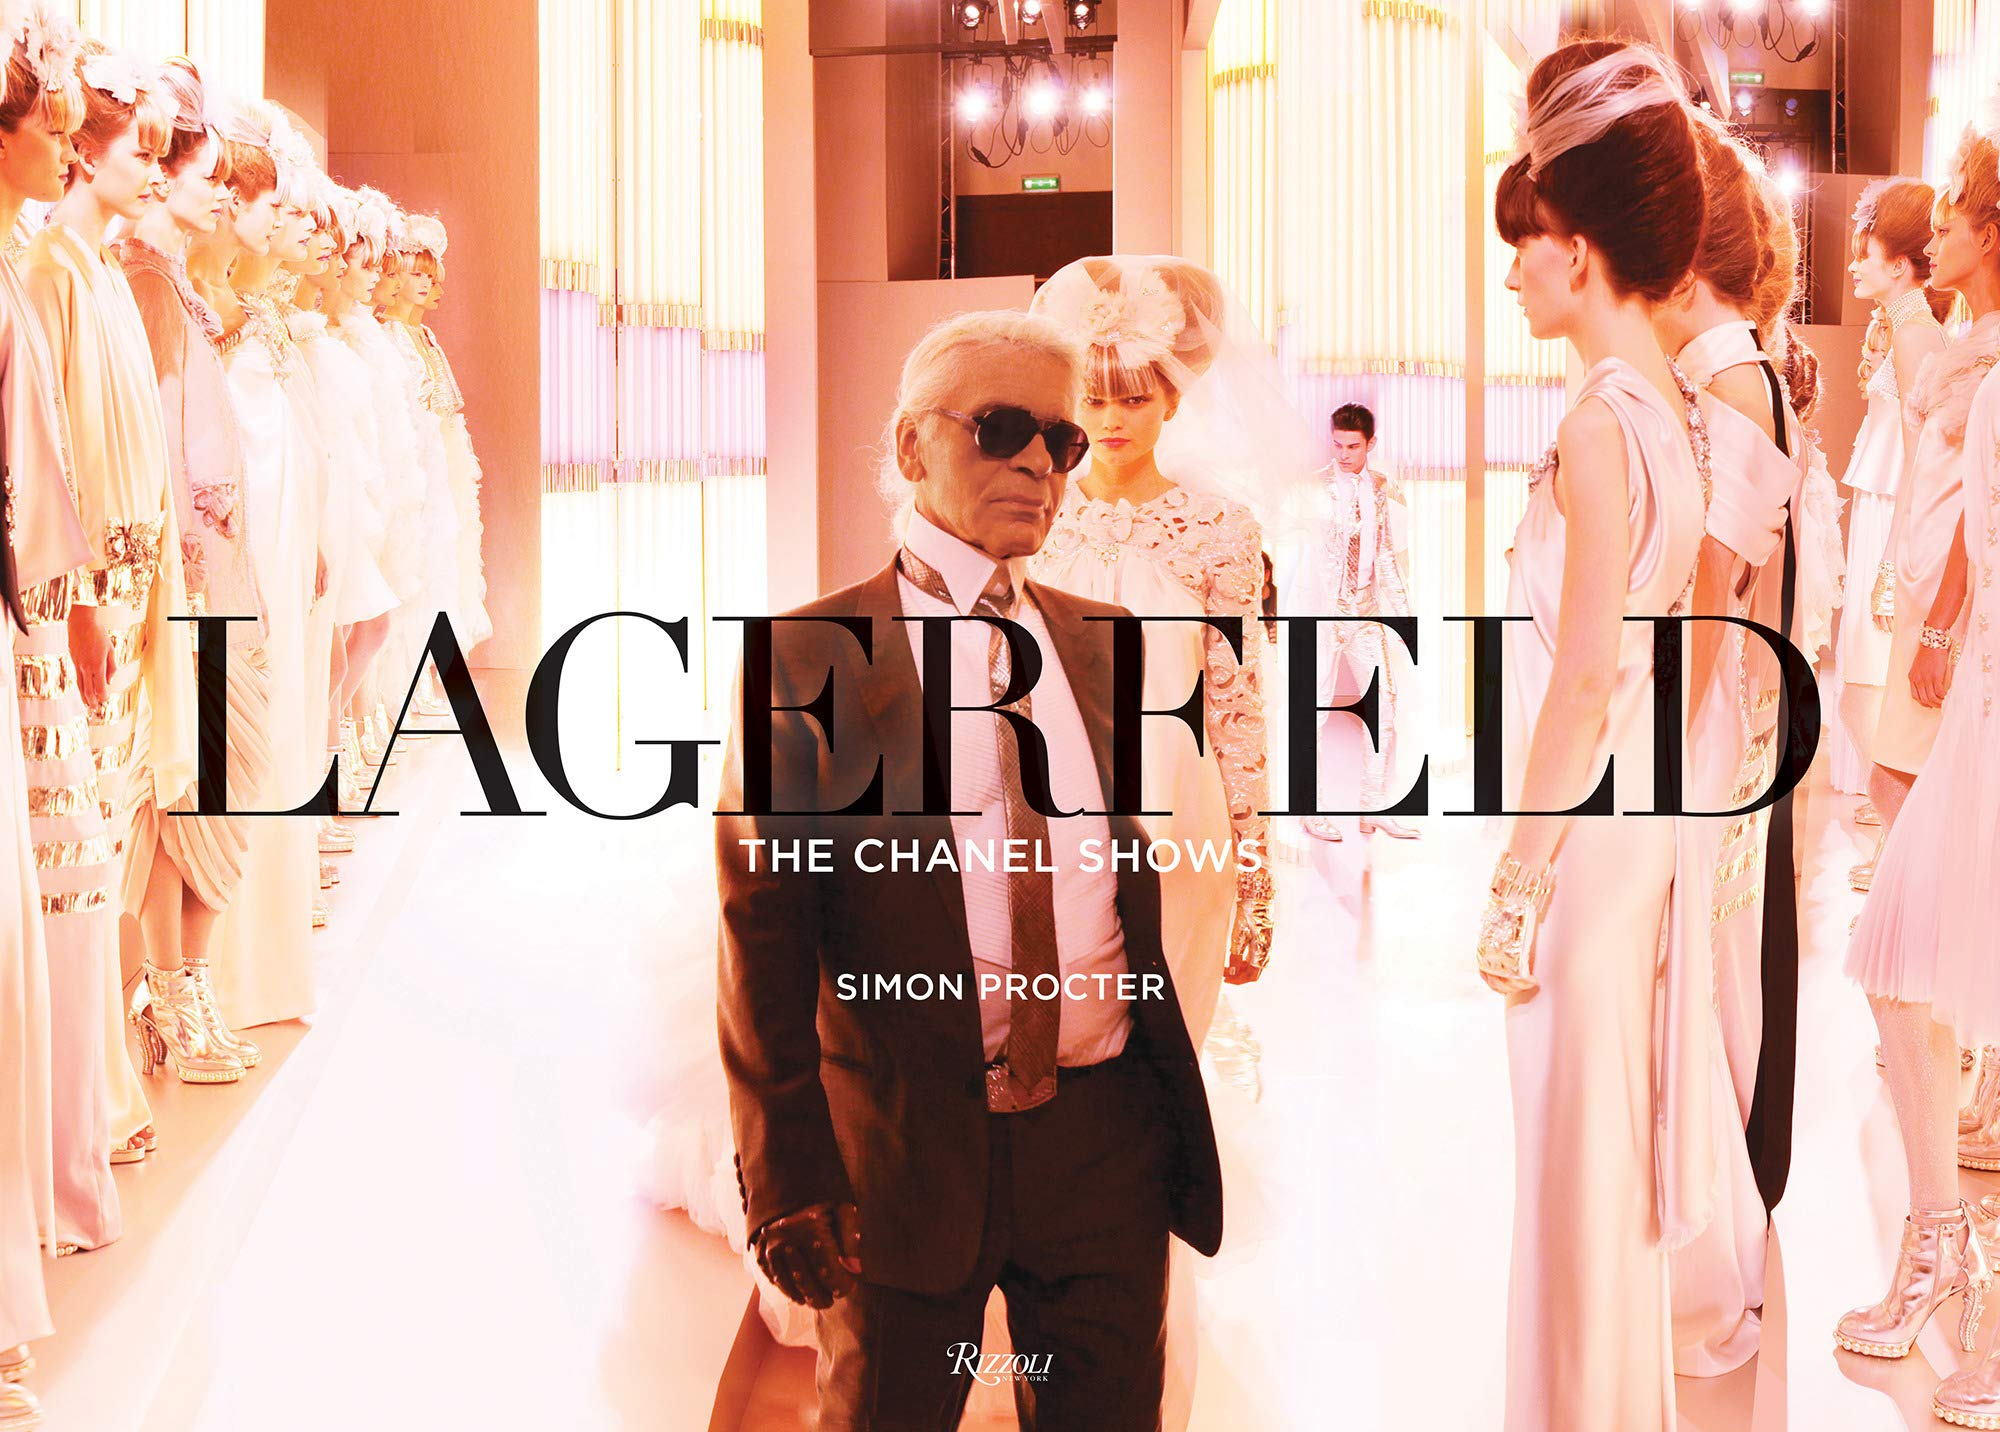 Lagerfeld: The Chanel Shows by Rizzoli